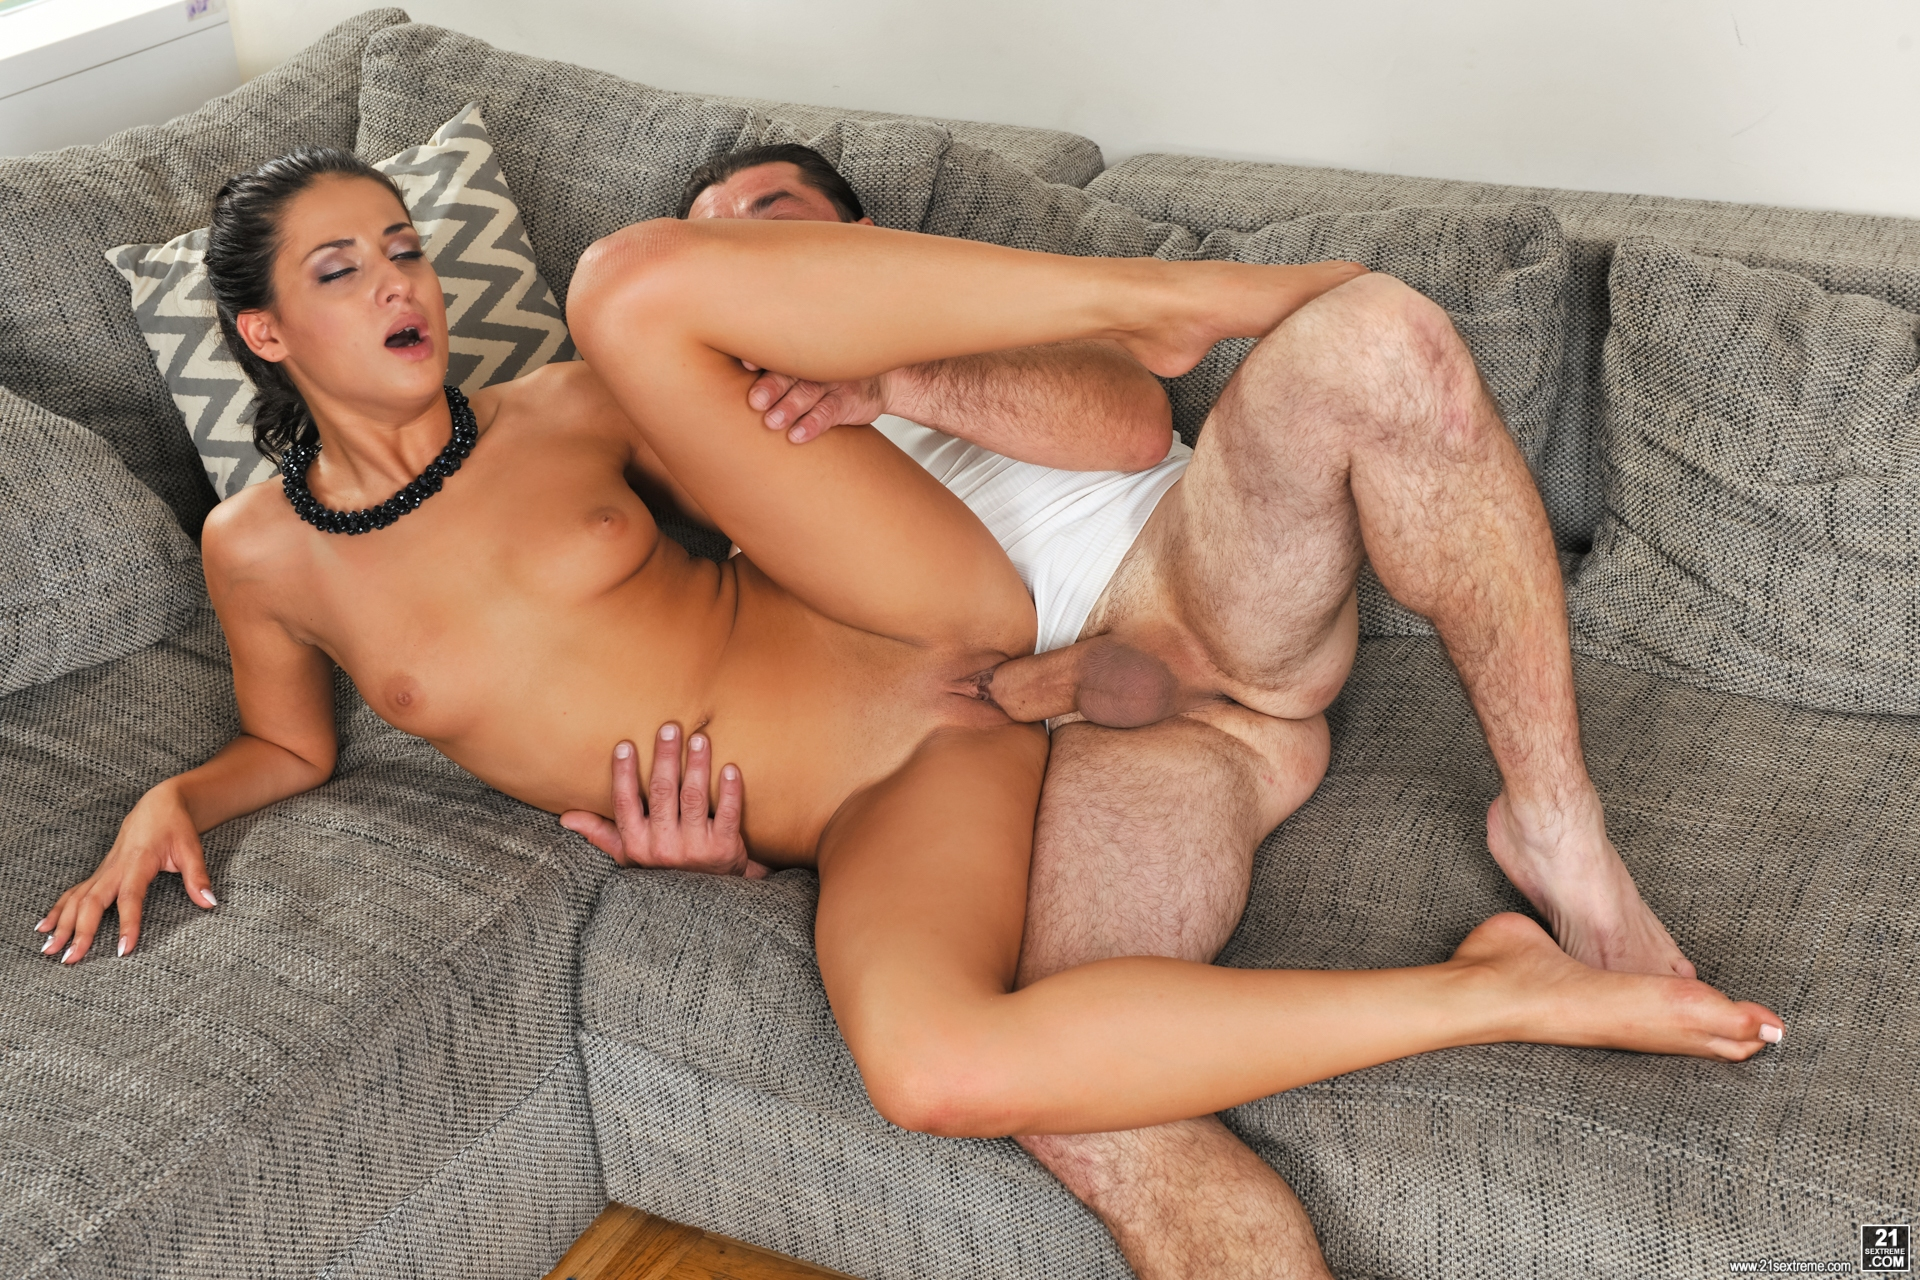 Latina Girl White Guy  Most Sexy Porn  Free Hd  4K Photos-5105